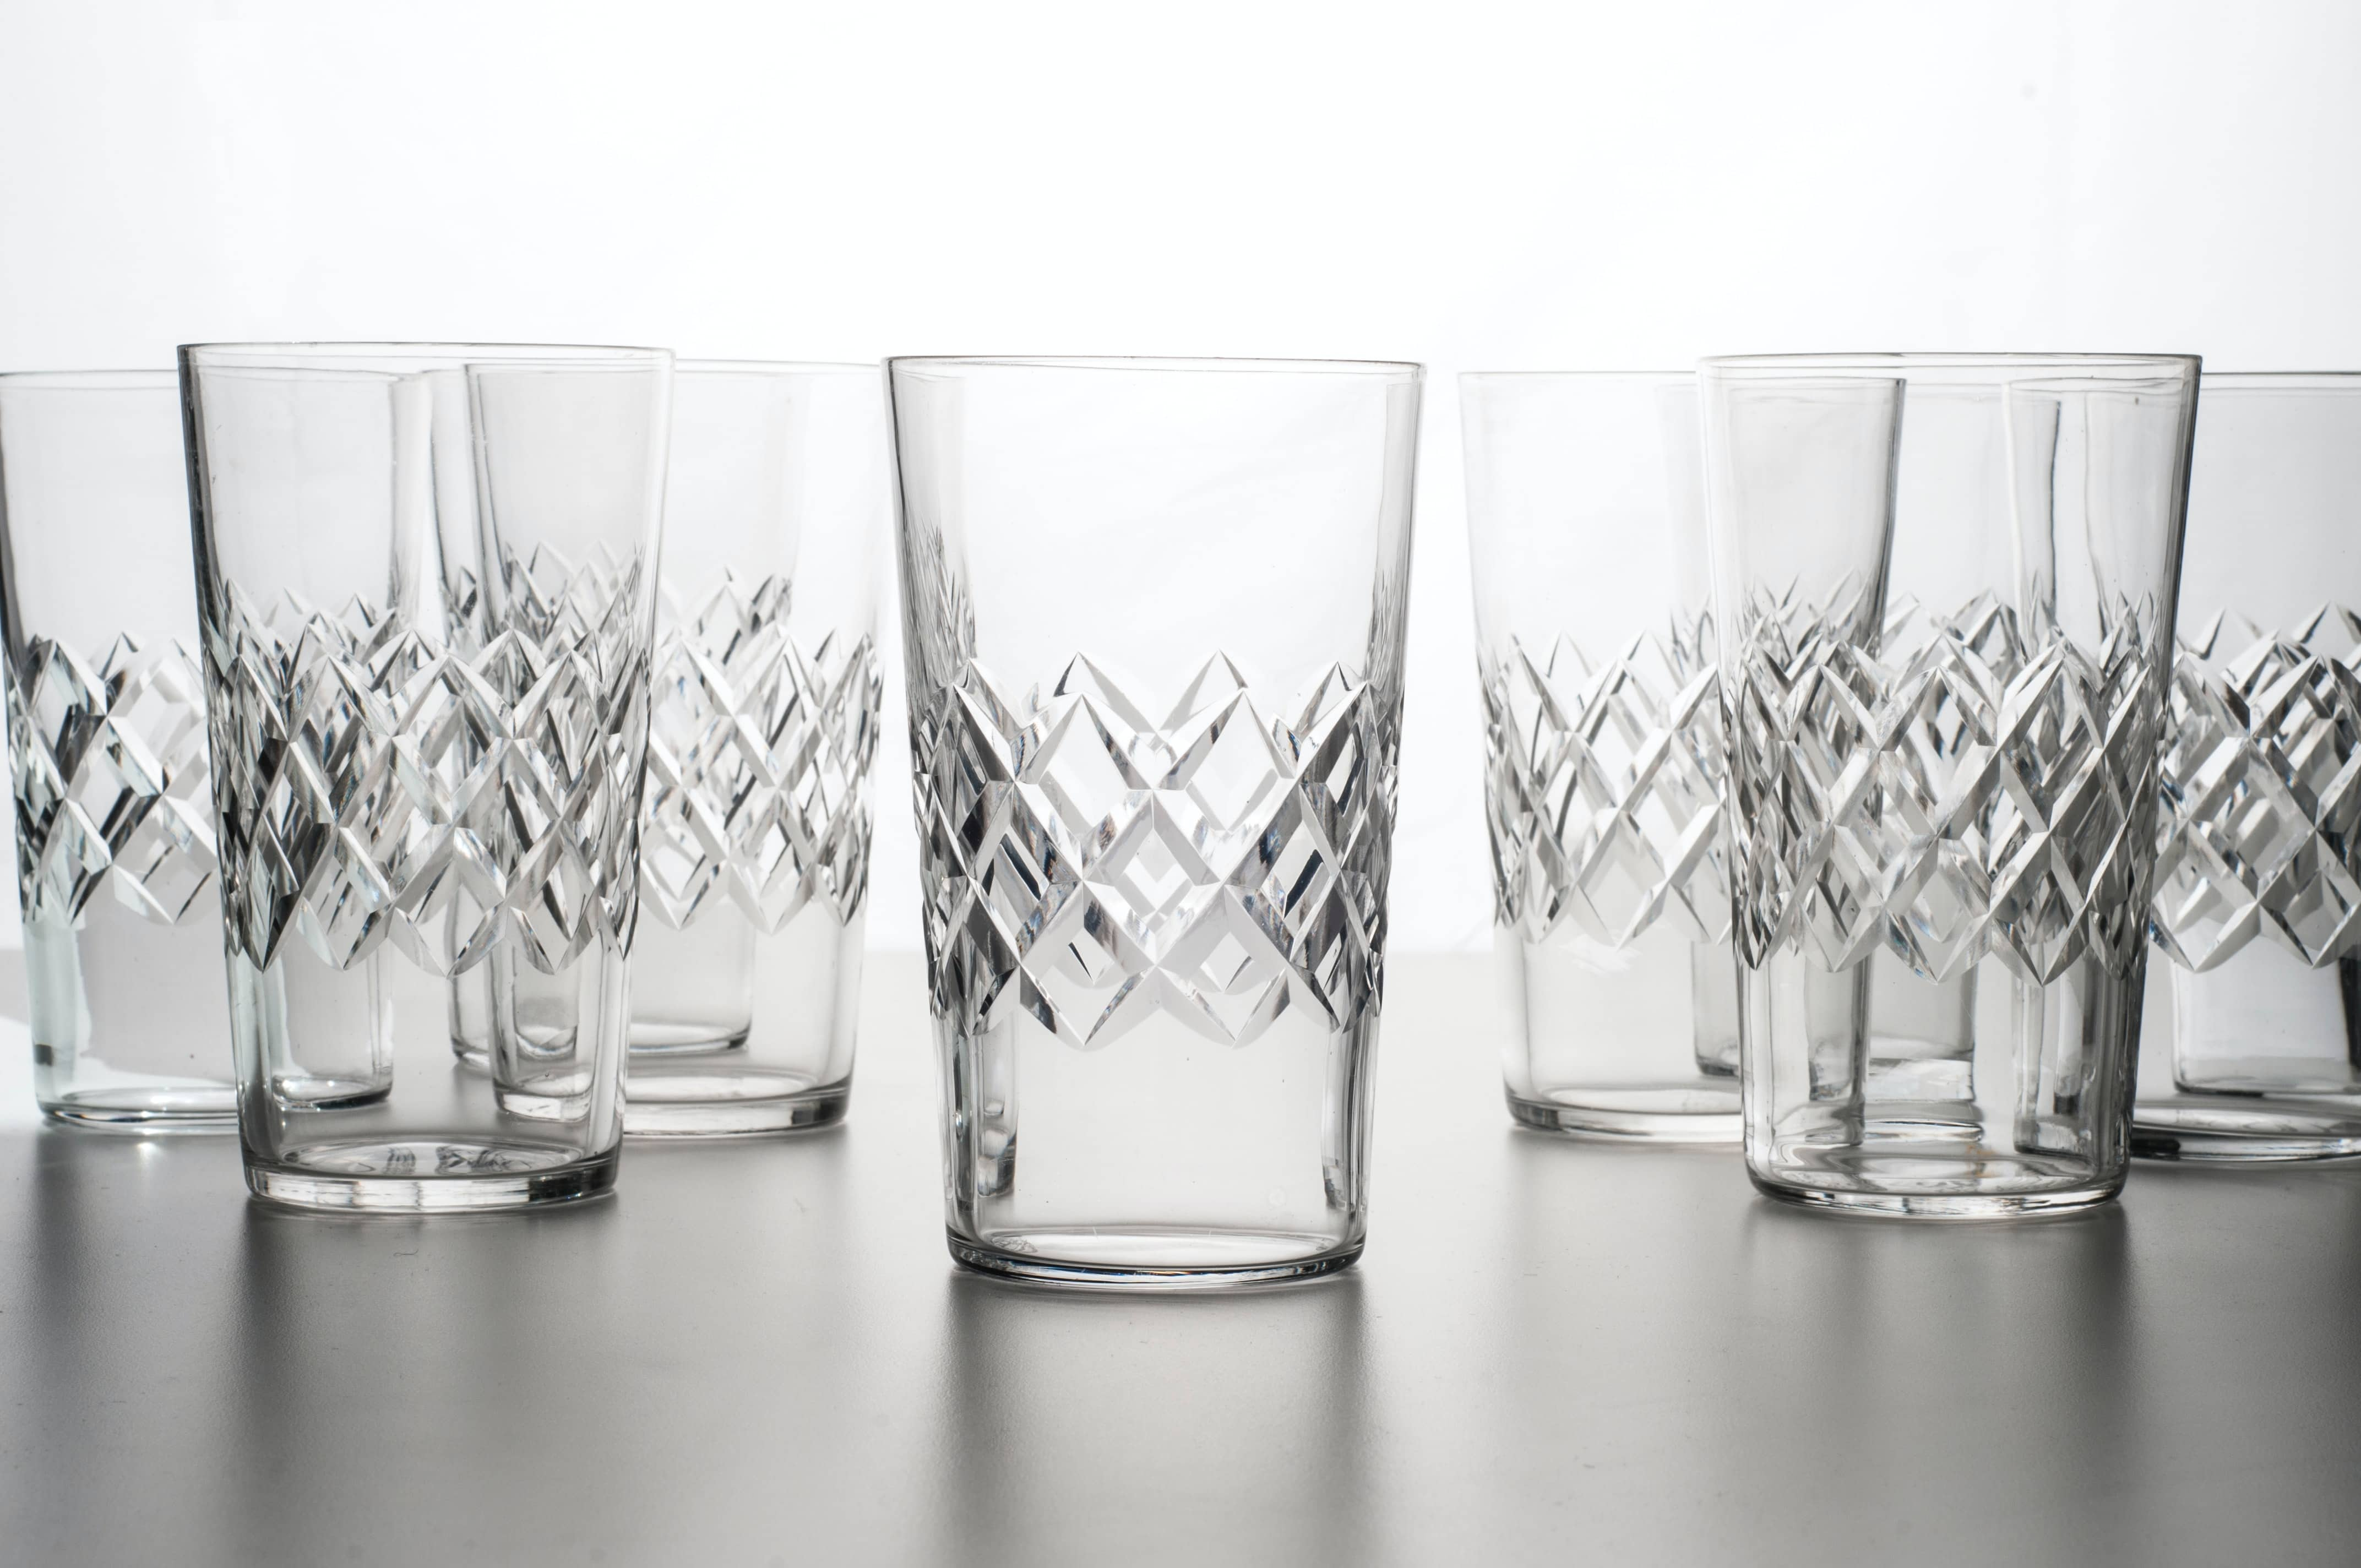 Where should drinking glasses be stored